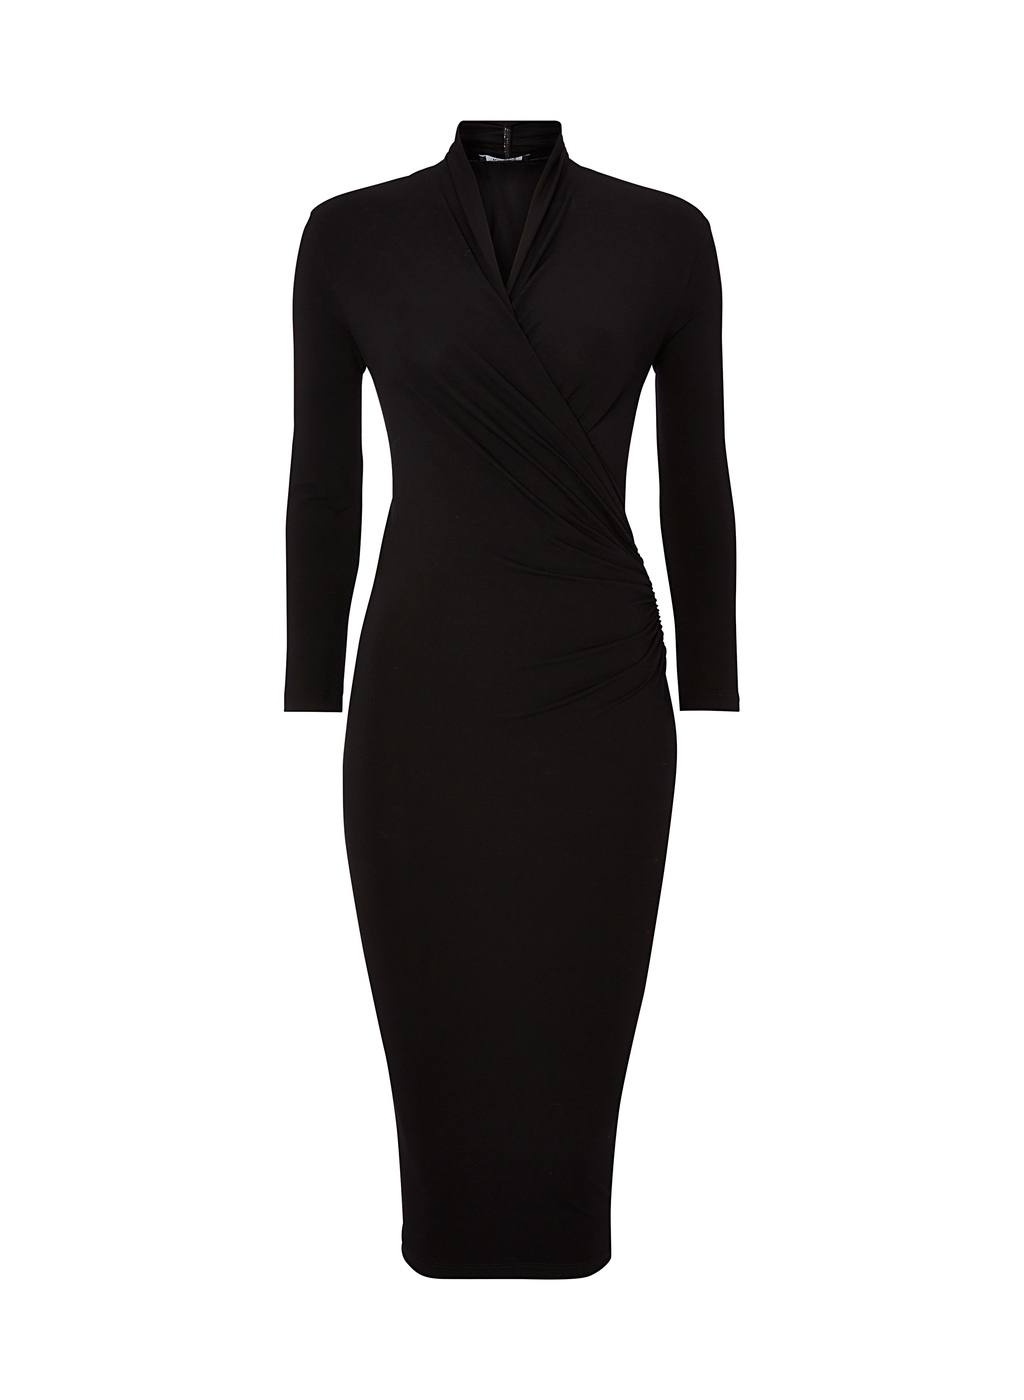 Womenswear Darton Dress - length: below the knee; fit: tight; pattern: plain; neckline: high neck; style: bodycon; predominant colour: black; occasions: evening, occasion; fibres: polyester/polyamide - stretch; sleeve length: long sleeve; sleeve style: standard; texture group: jersey - clingy; pattern type: fabric; season: a/w 2014